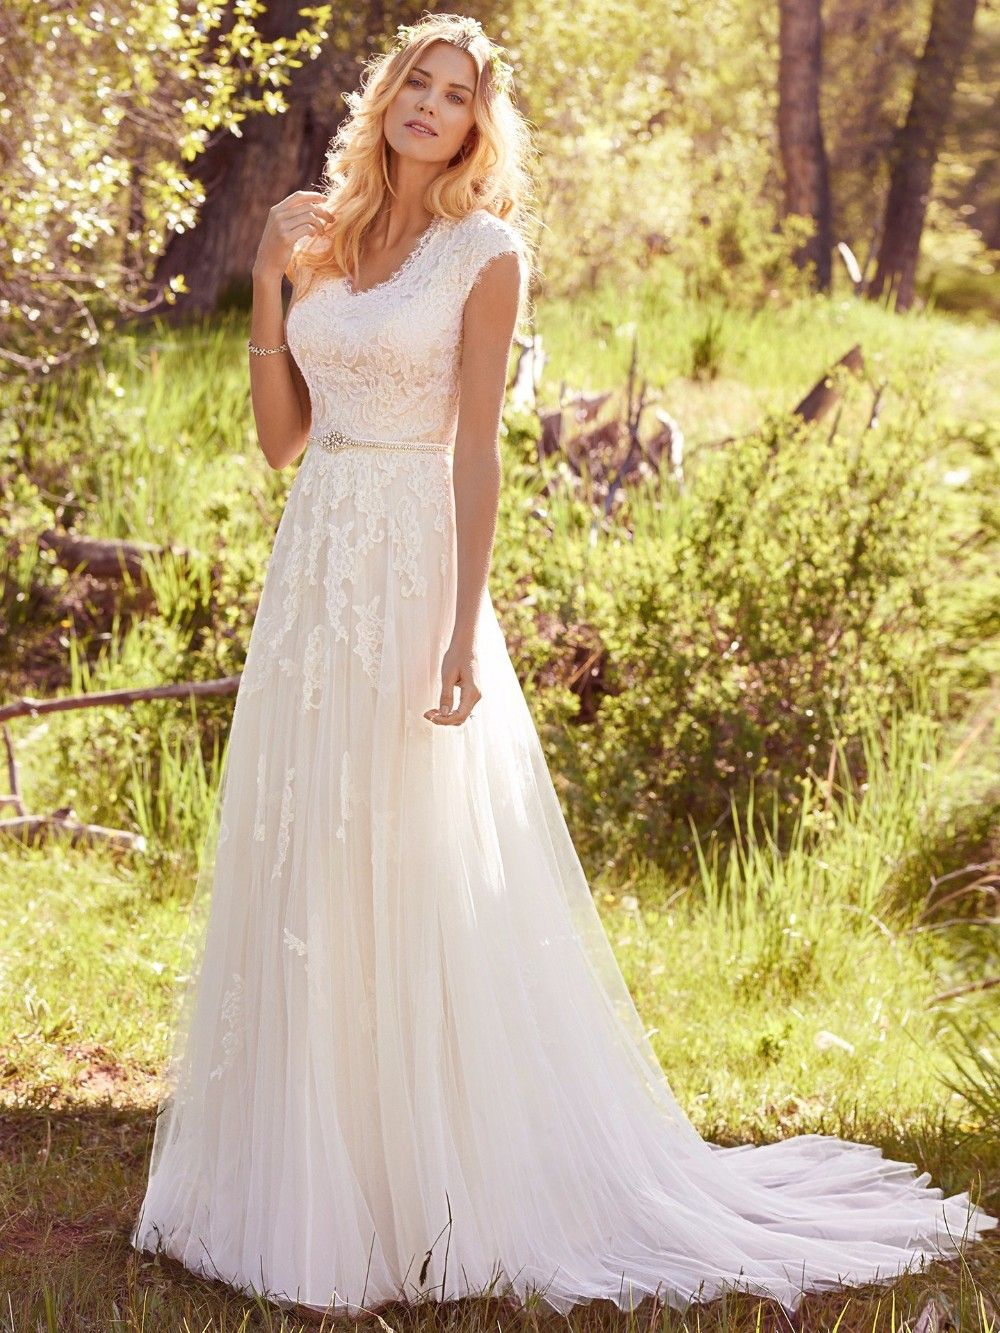 Elegant lace appliques tulle modest wedding dress with cap sleeves